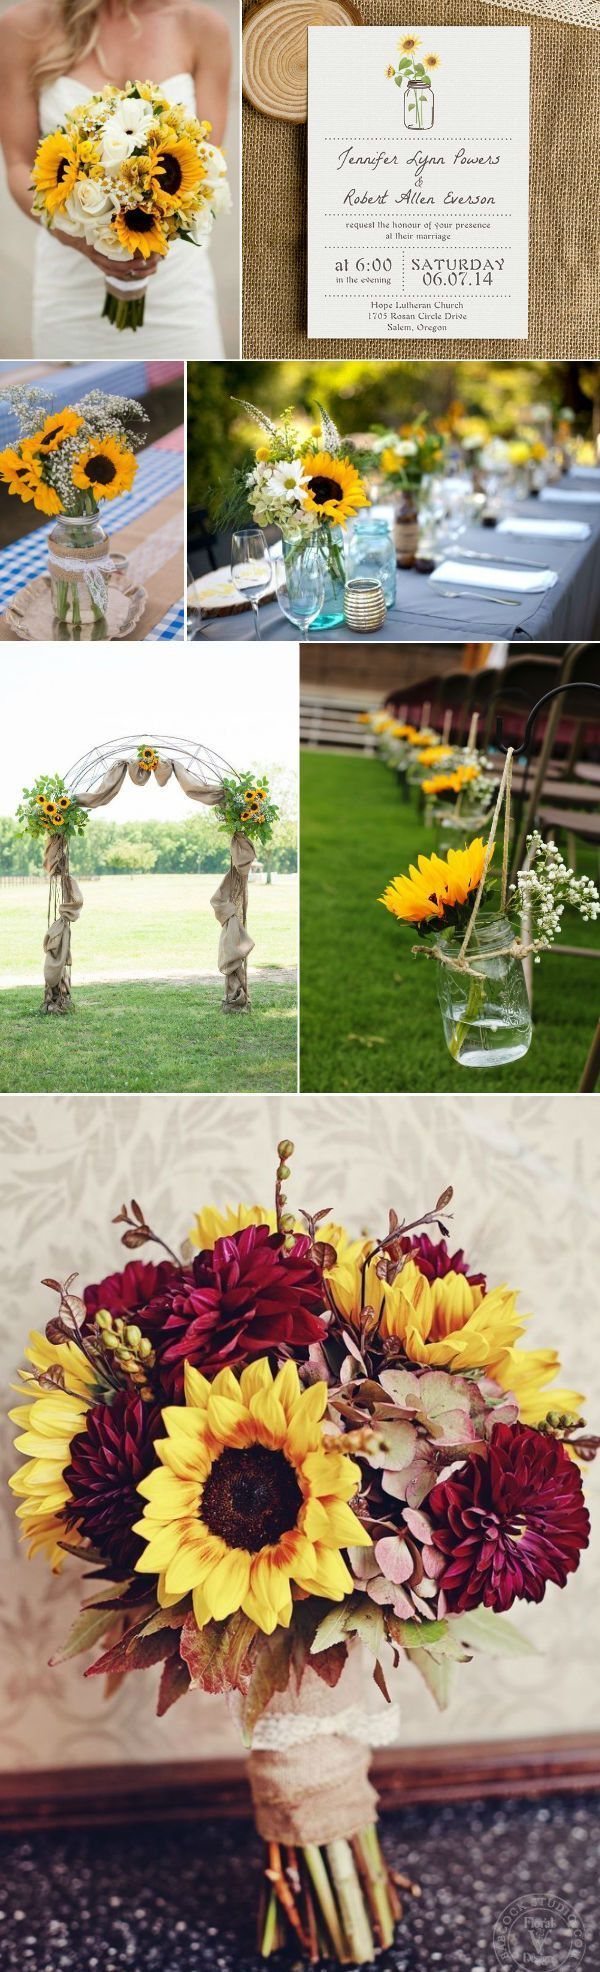 Wedding ideas rustic theme   best images about Extra on Pinterest  Wedding ideas Rustic and